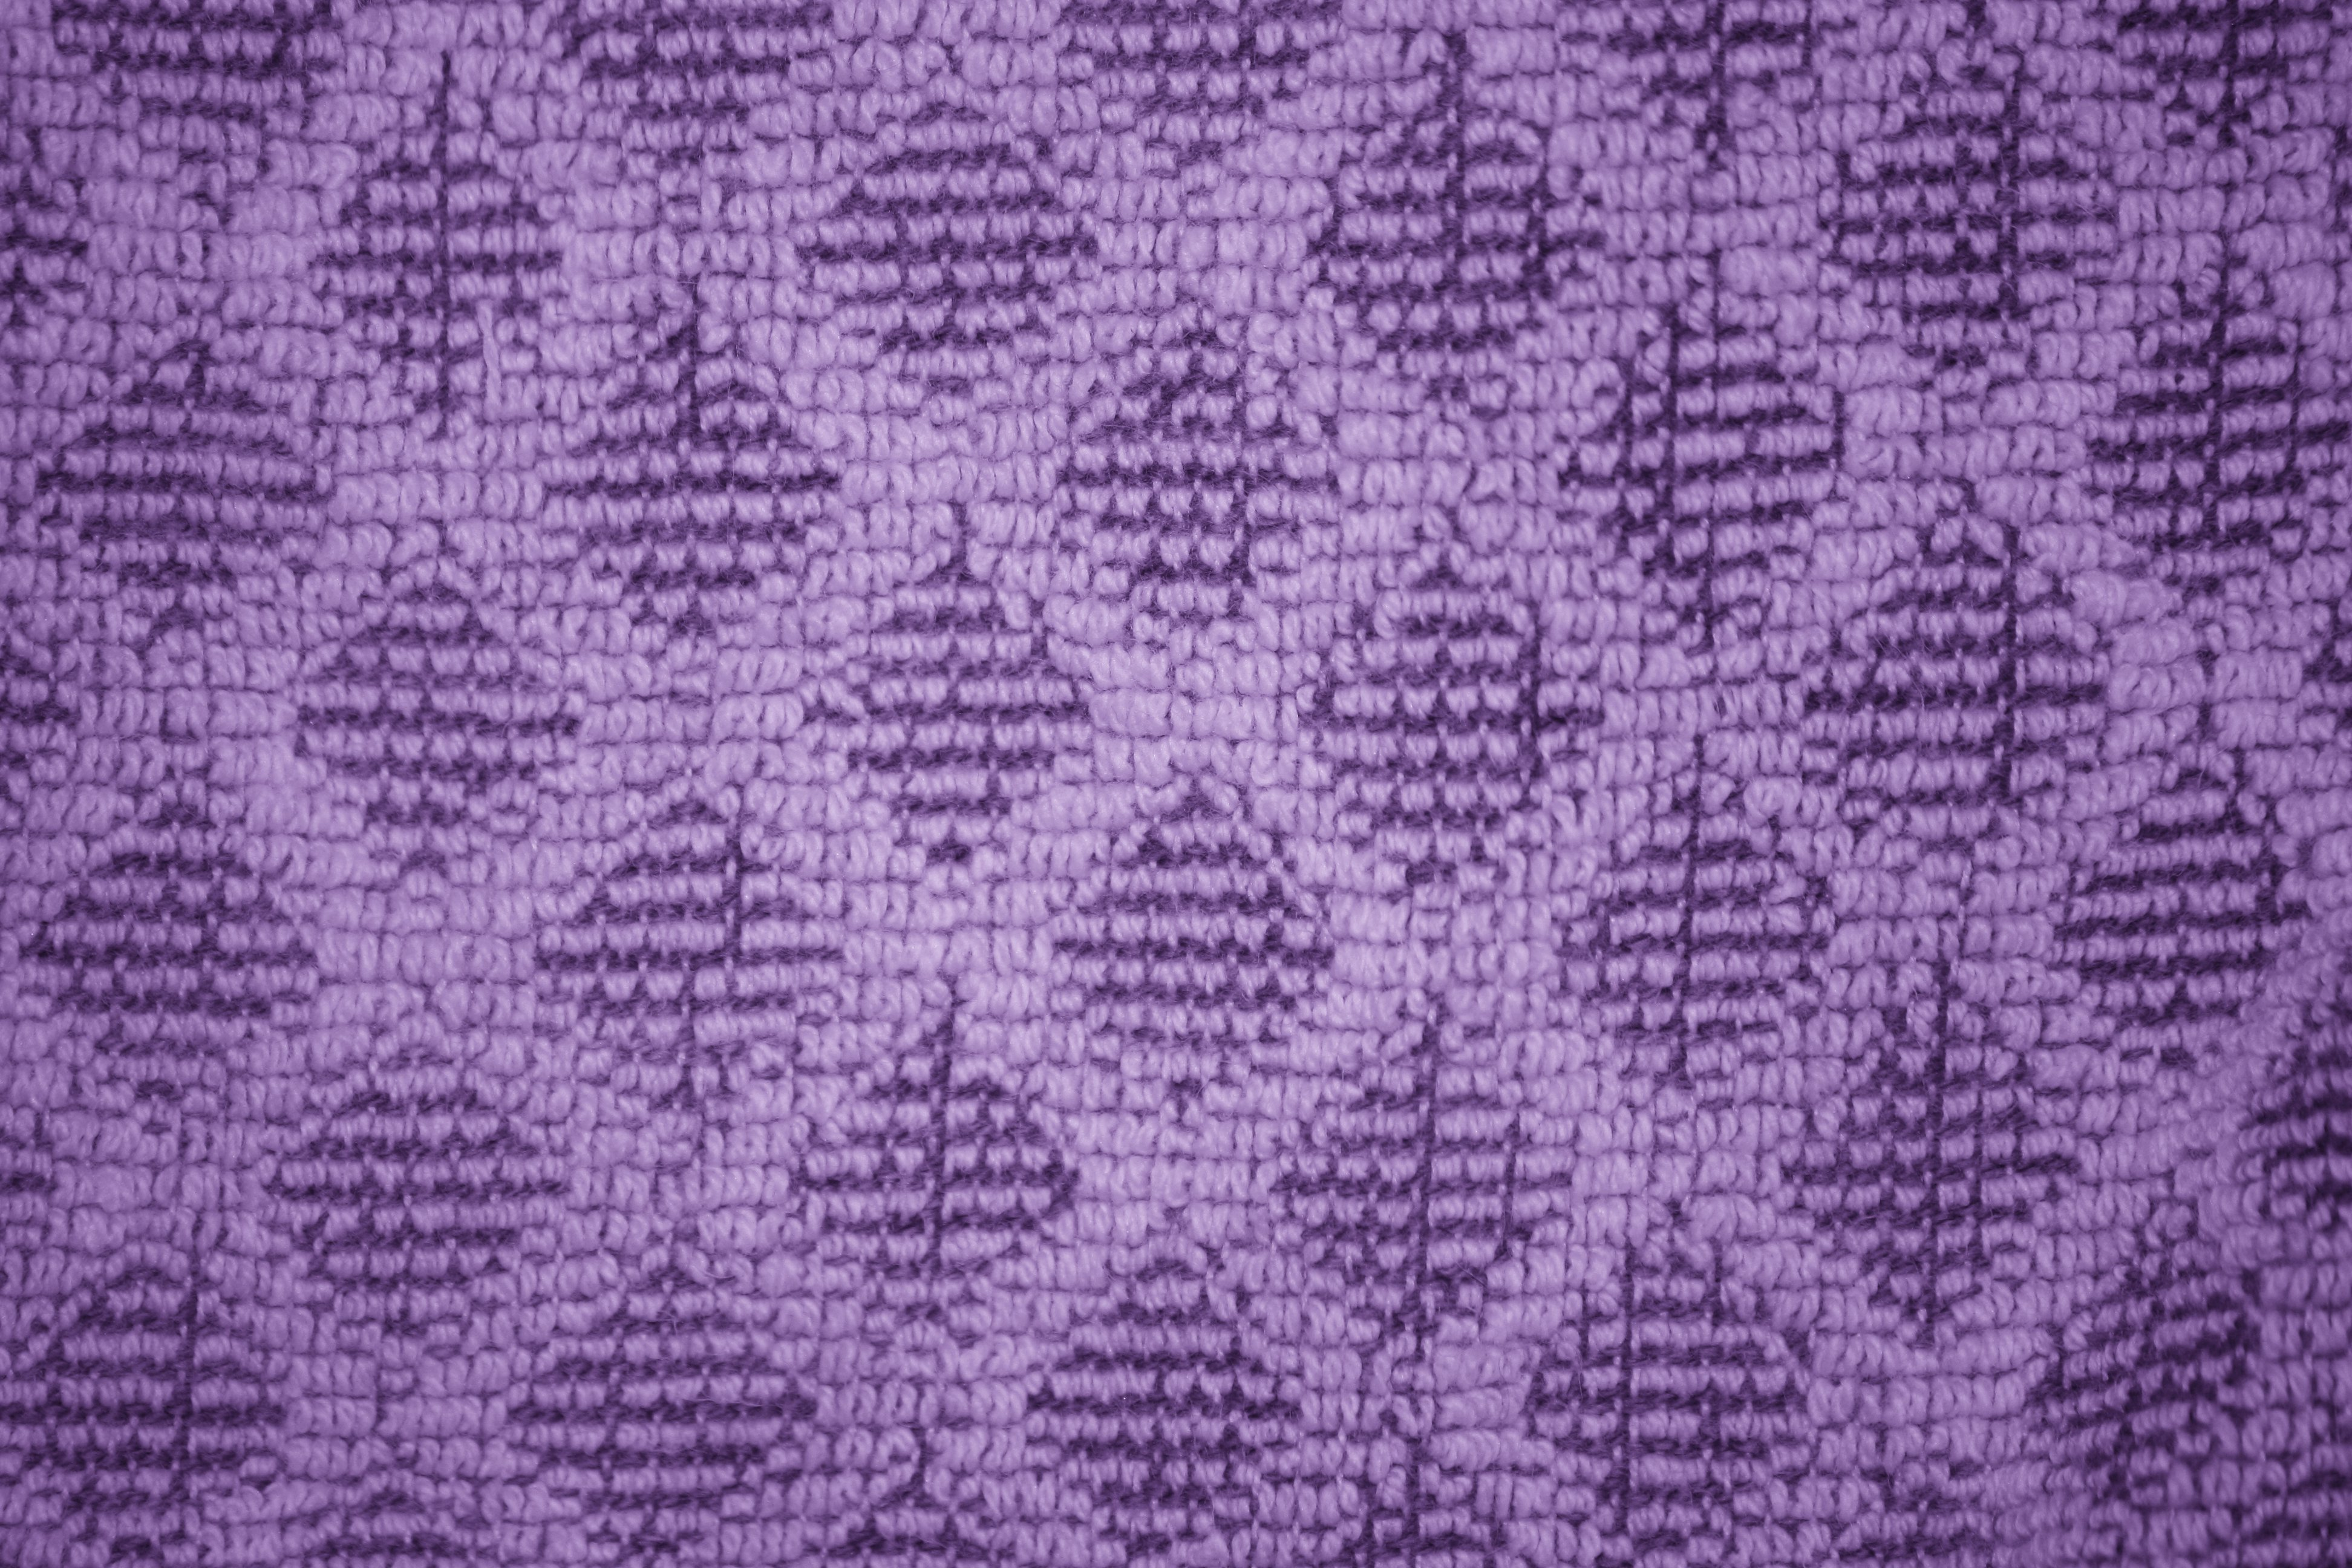 Purple Dish Towel with Diamond Pattern Close Up Texture Picture ...